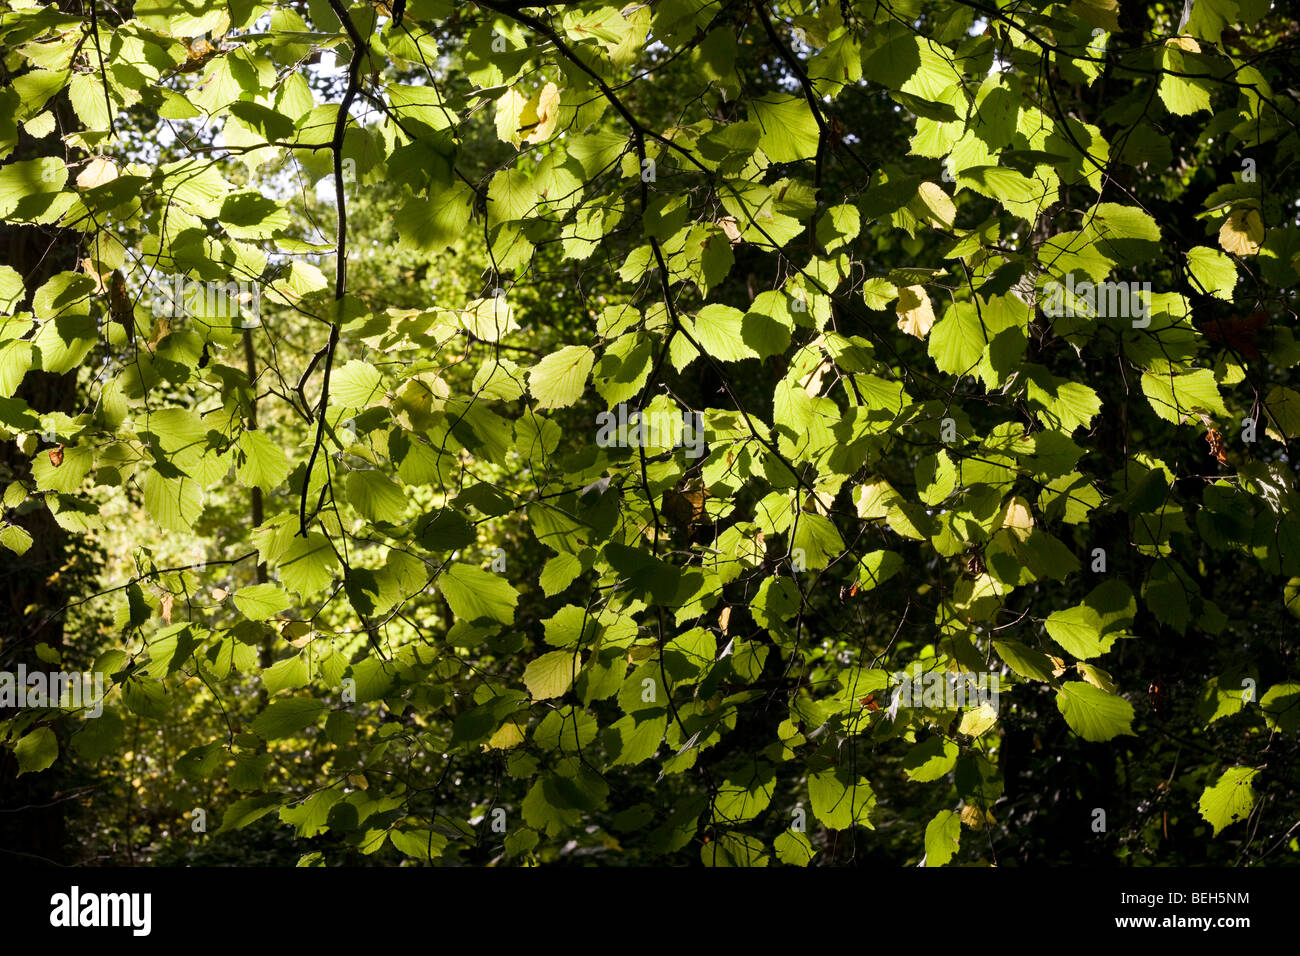 Summer sunlight filters through the old boughs and green foliage of beech trees in the ancient forest of Sydenham - Stock Image